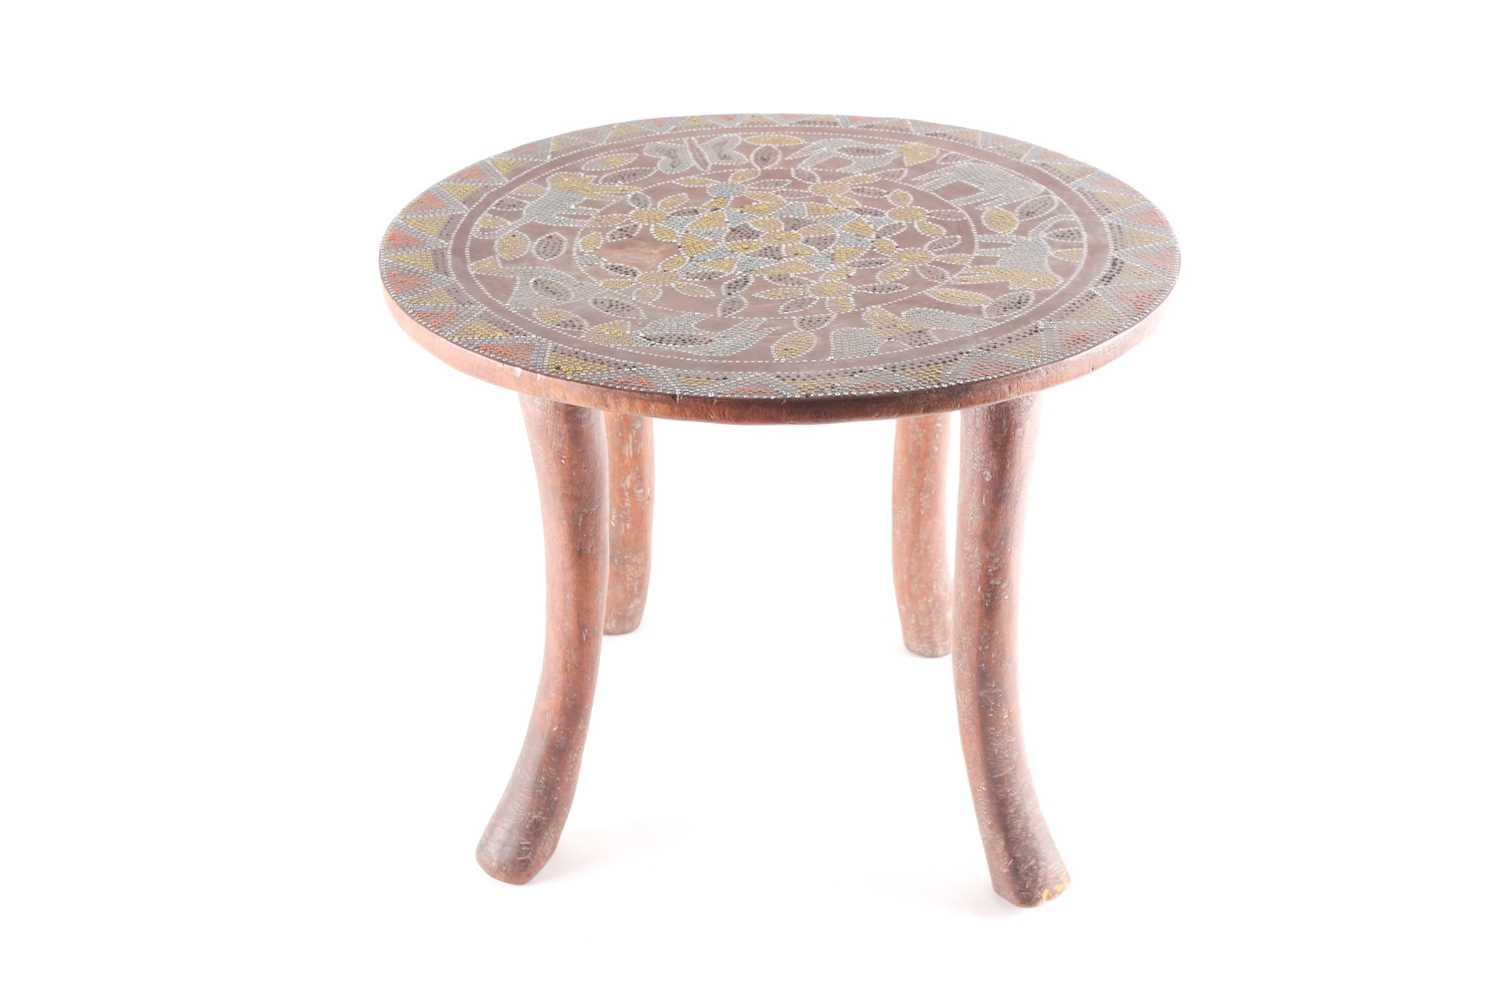 A Kamba stool, Kenya, the circular top inlaid with coloured glass beads, decorated with flower,